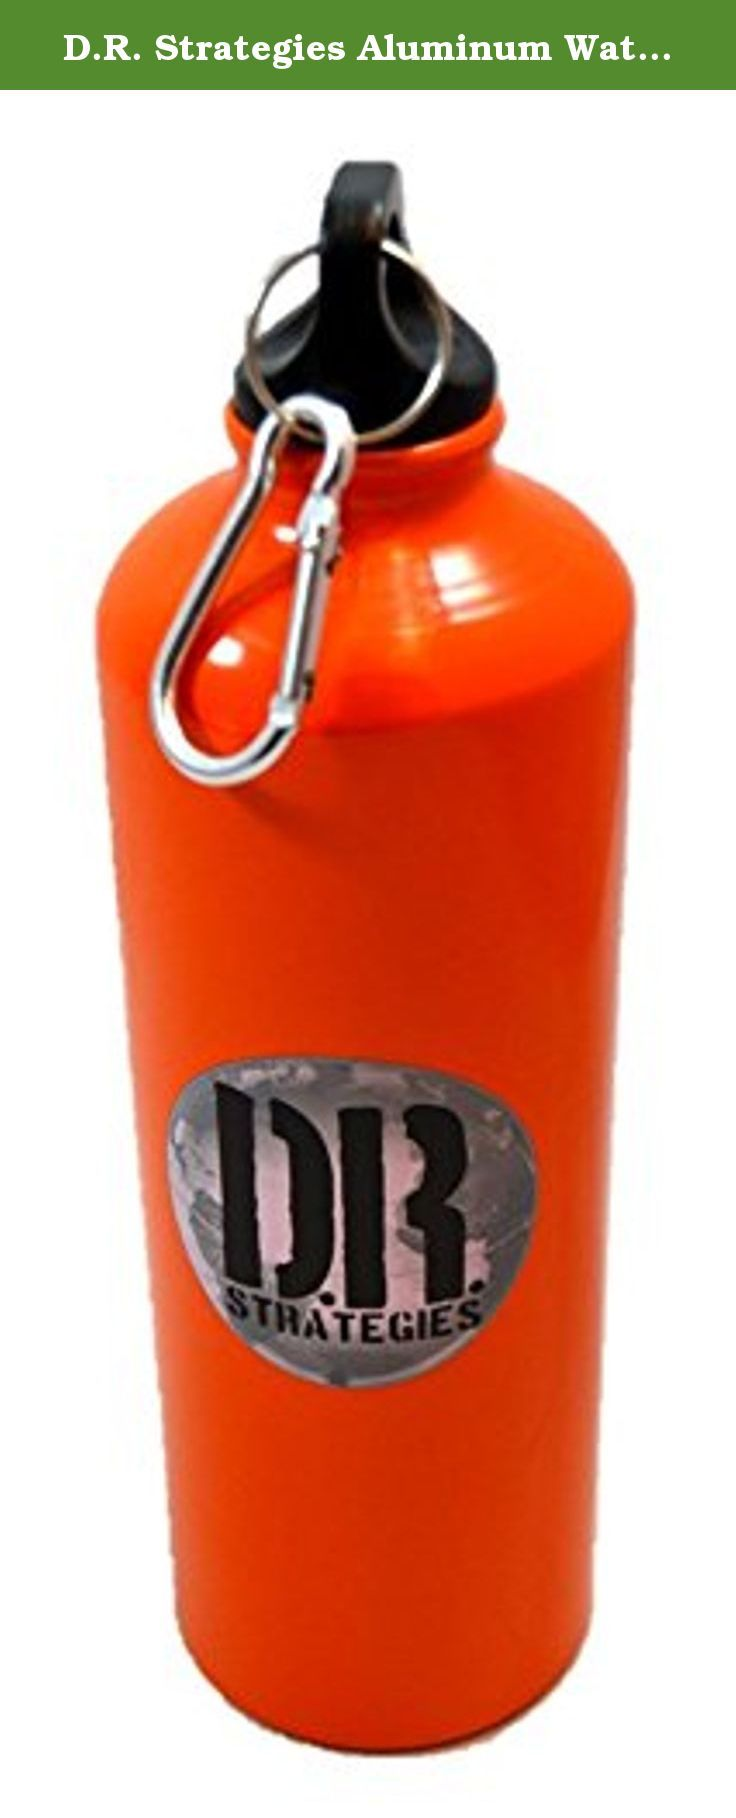 D.R. Strategies Aluminum Water Bottle, 750mL, 12-pack. Lightweight aluminum water bottle by D.R. Strategies. Capacity: 750mL. Black plastic screw cap with an aluminum carabiner for easy carrying. This is a pack of 12 bottles.